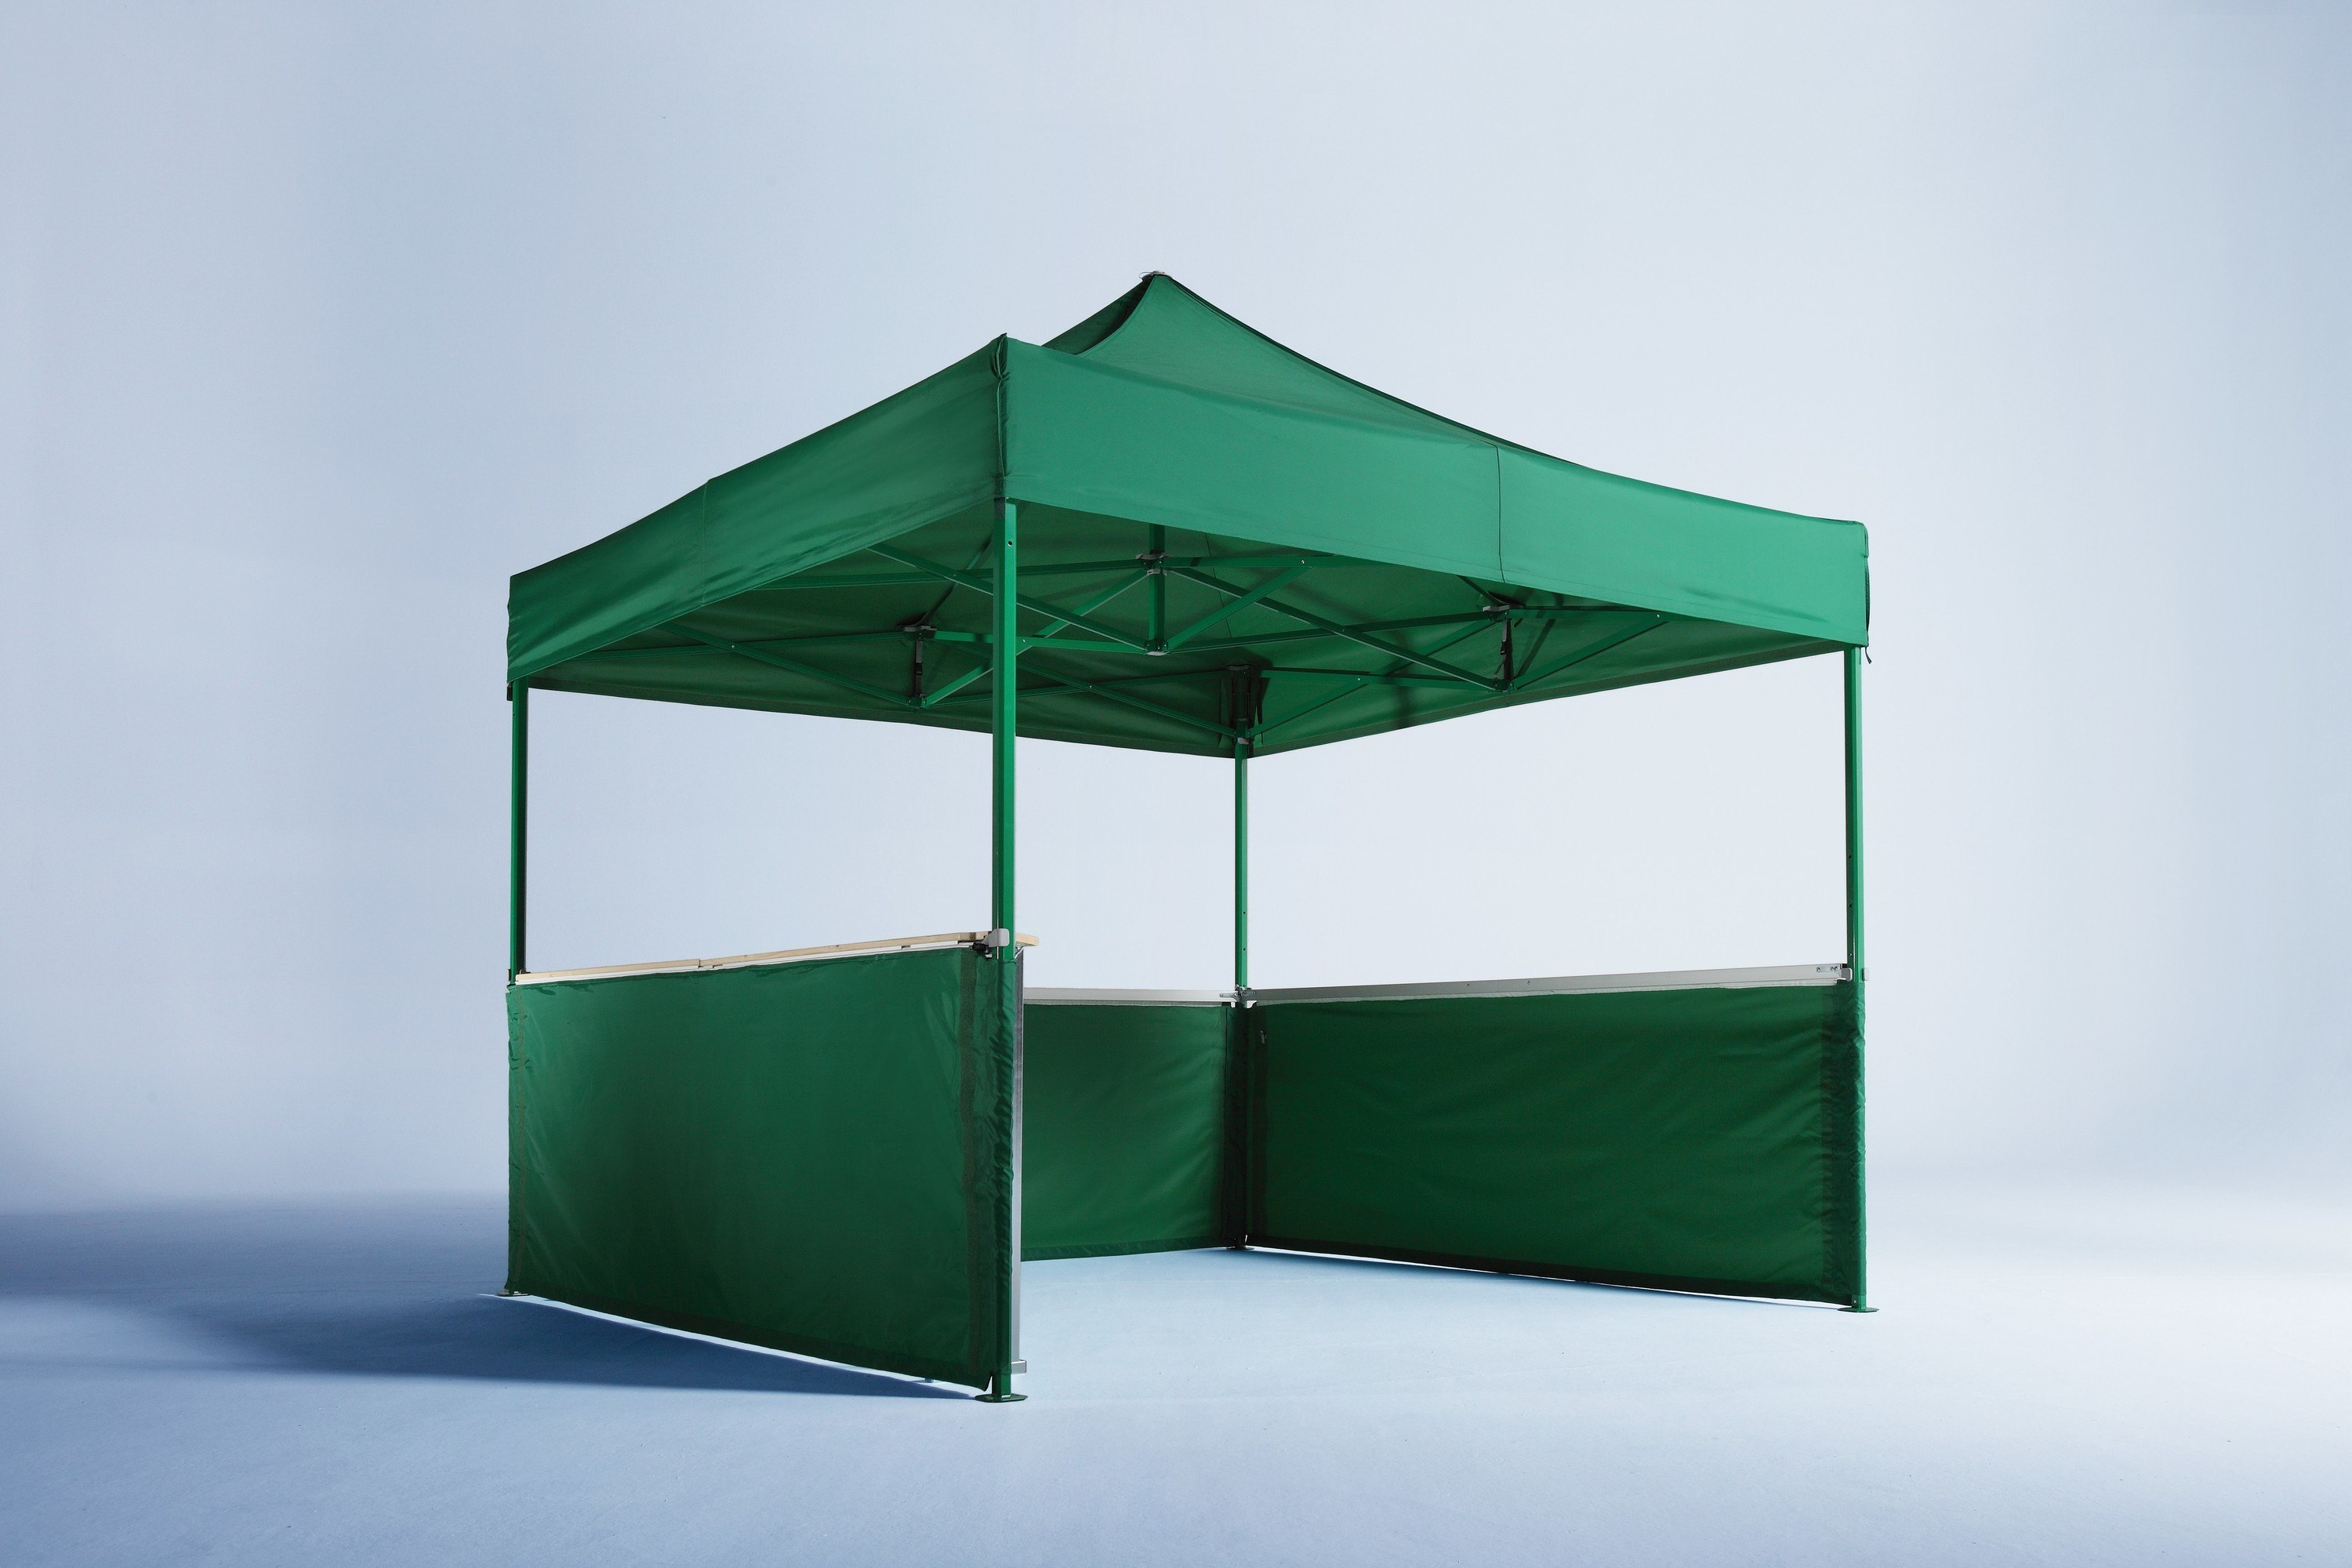 <p>Tents & Marquees – Folding Tents – Green Classic Gazebo.</p> <p> </p> <p>3x3m coloured frame with half height walls.</p> <p> </p> <p> </p>